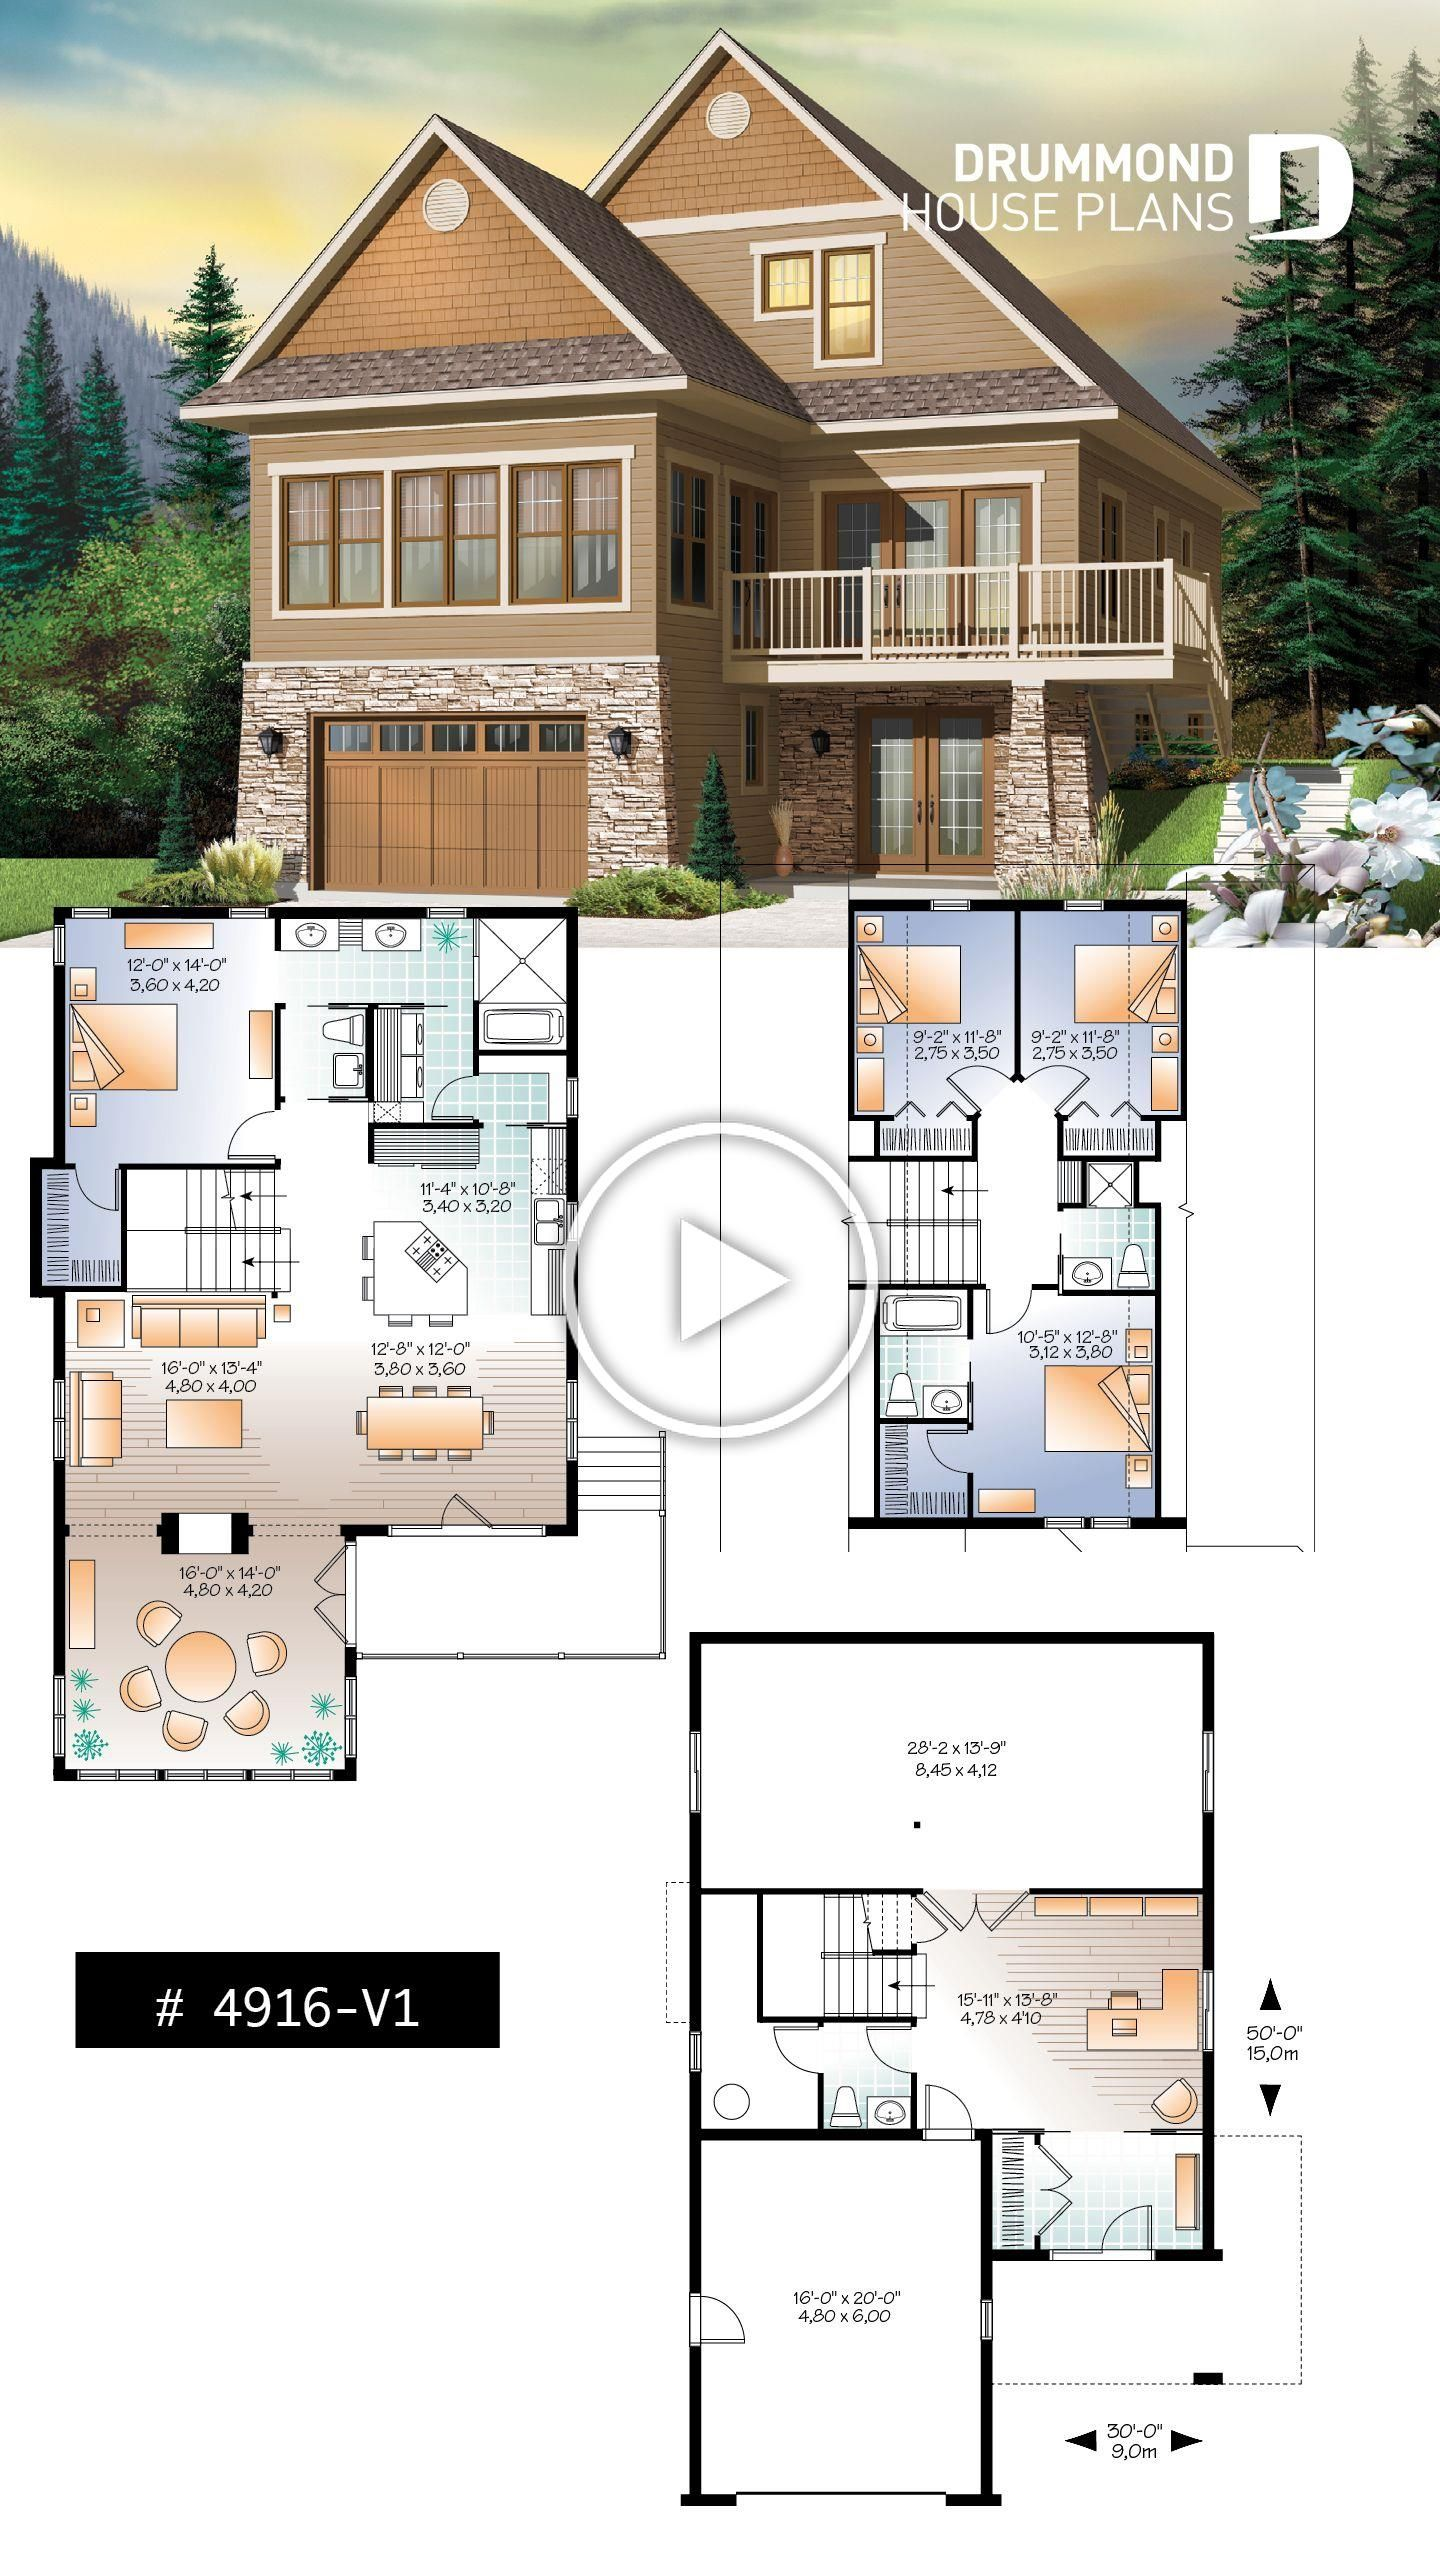 Lakefront Or Mountain 4 Bedroom Home Plan 2 Master Suites Open Floor Plan Home Office Bonus Space 3 Baths In 2020 Sims House Plans